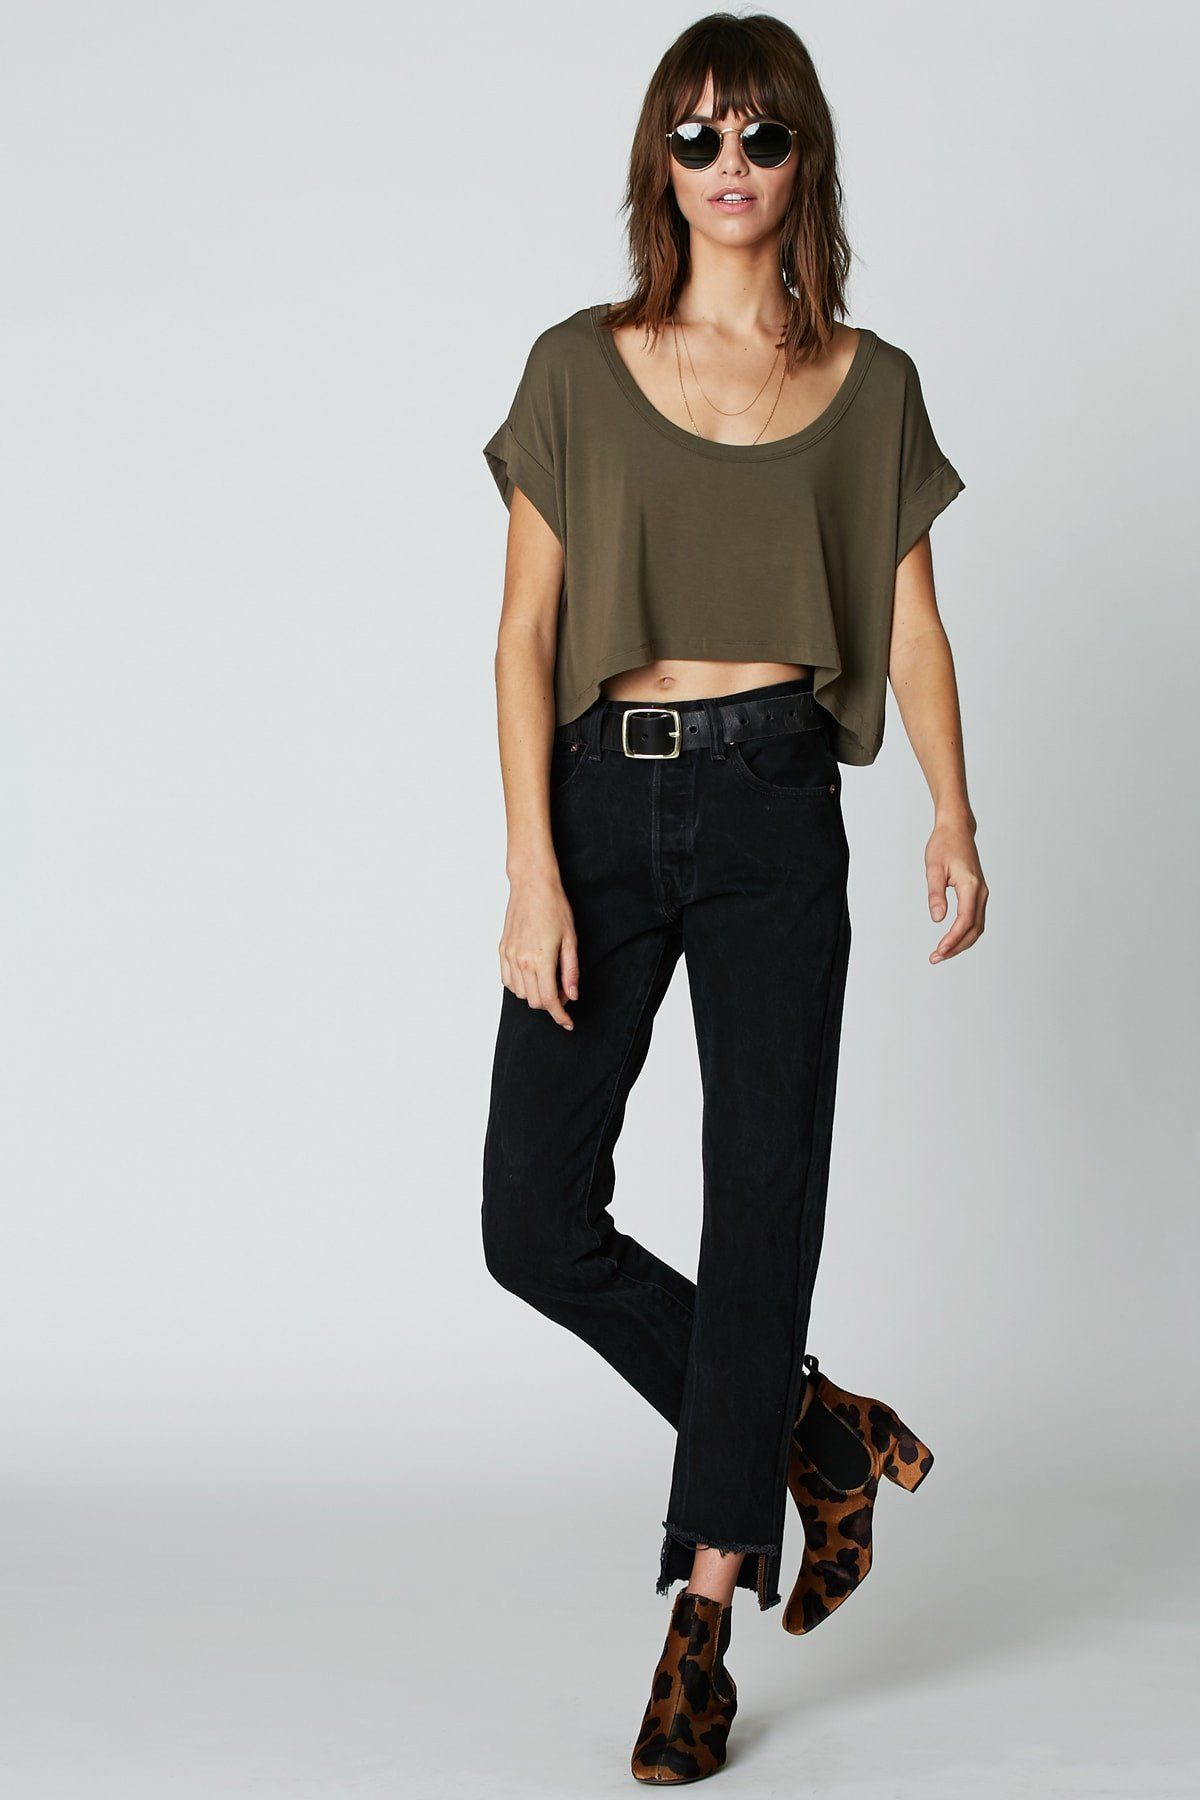 This short sleeve tshirt is super cropped in the front and longer in